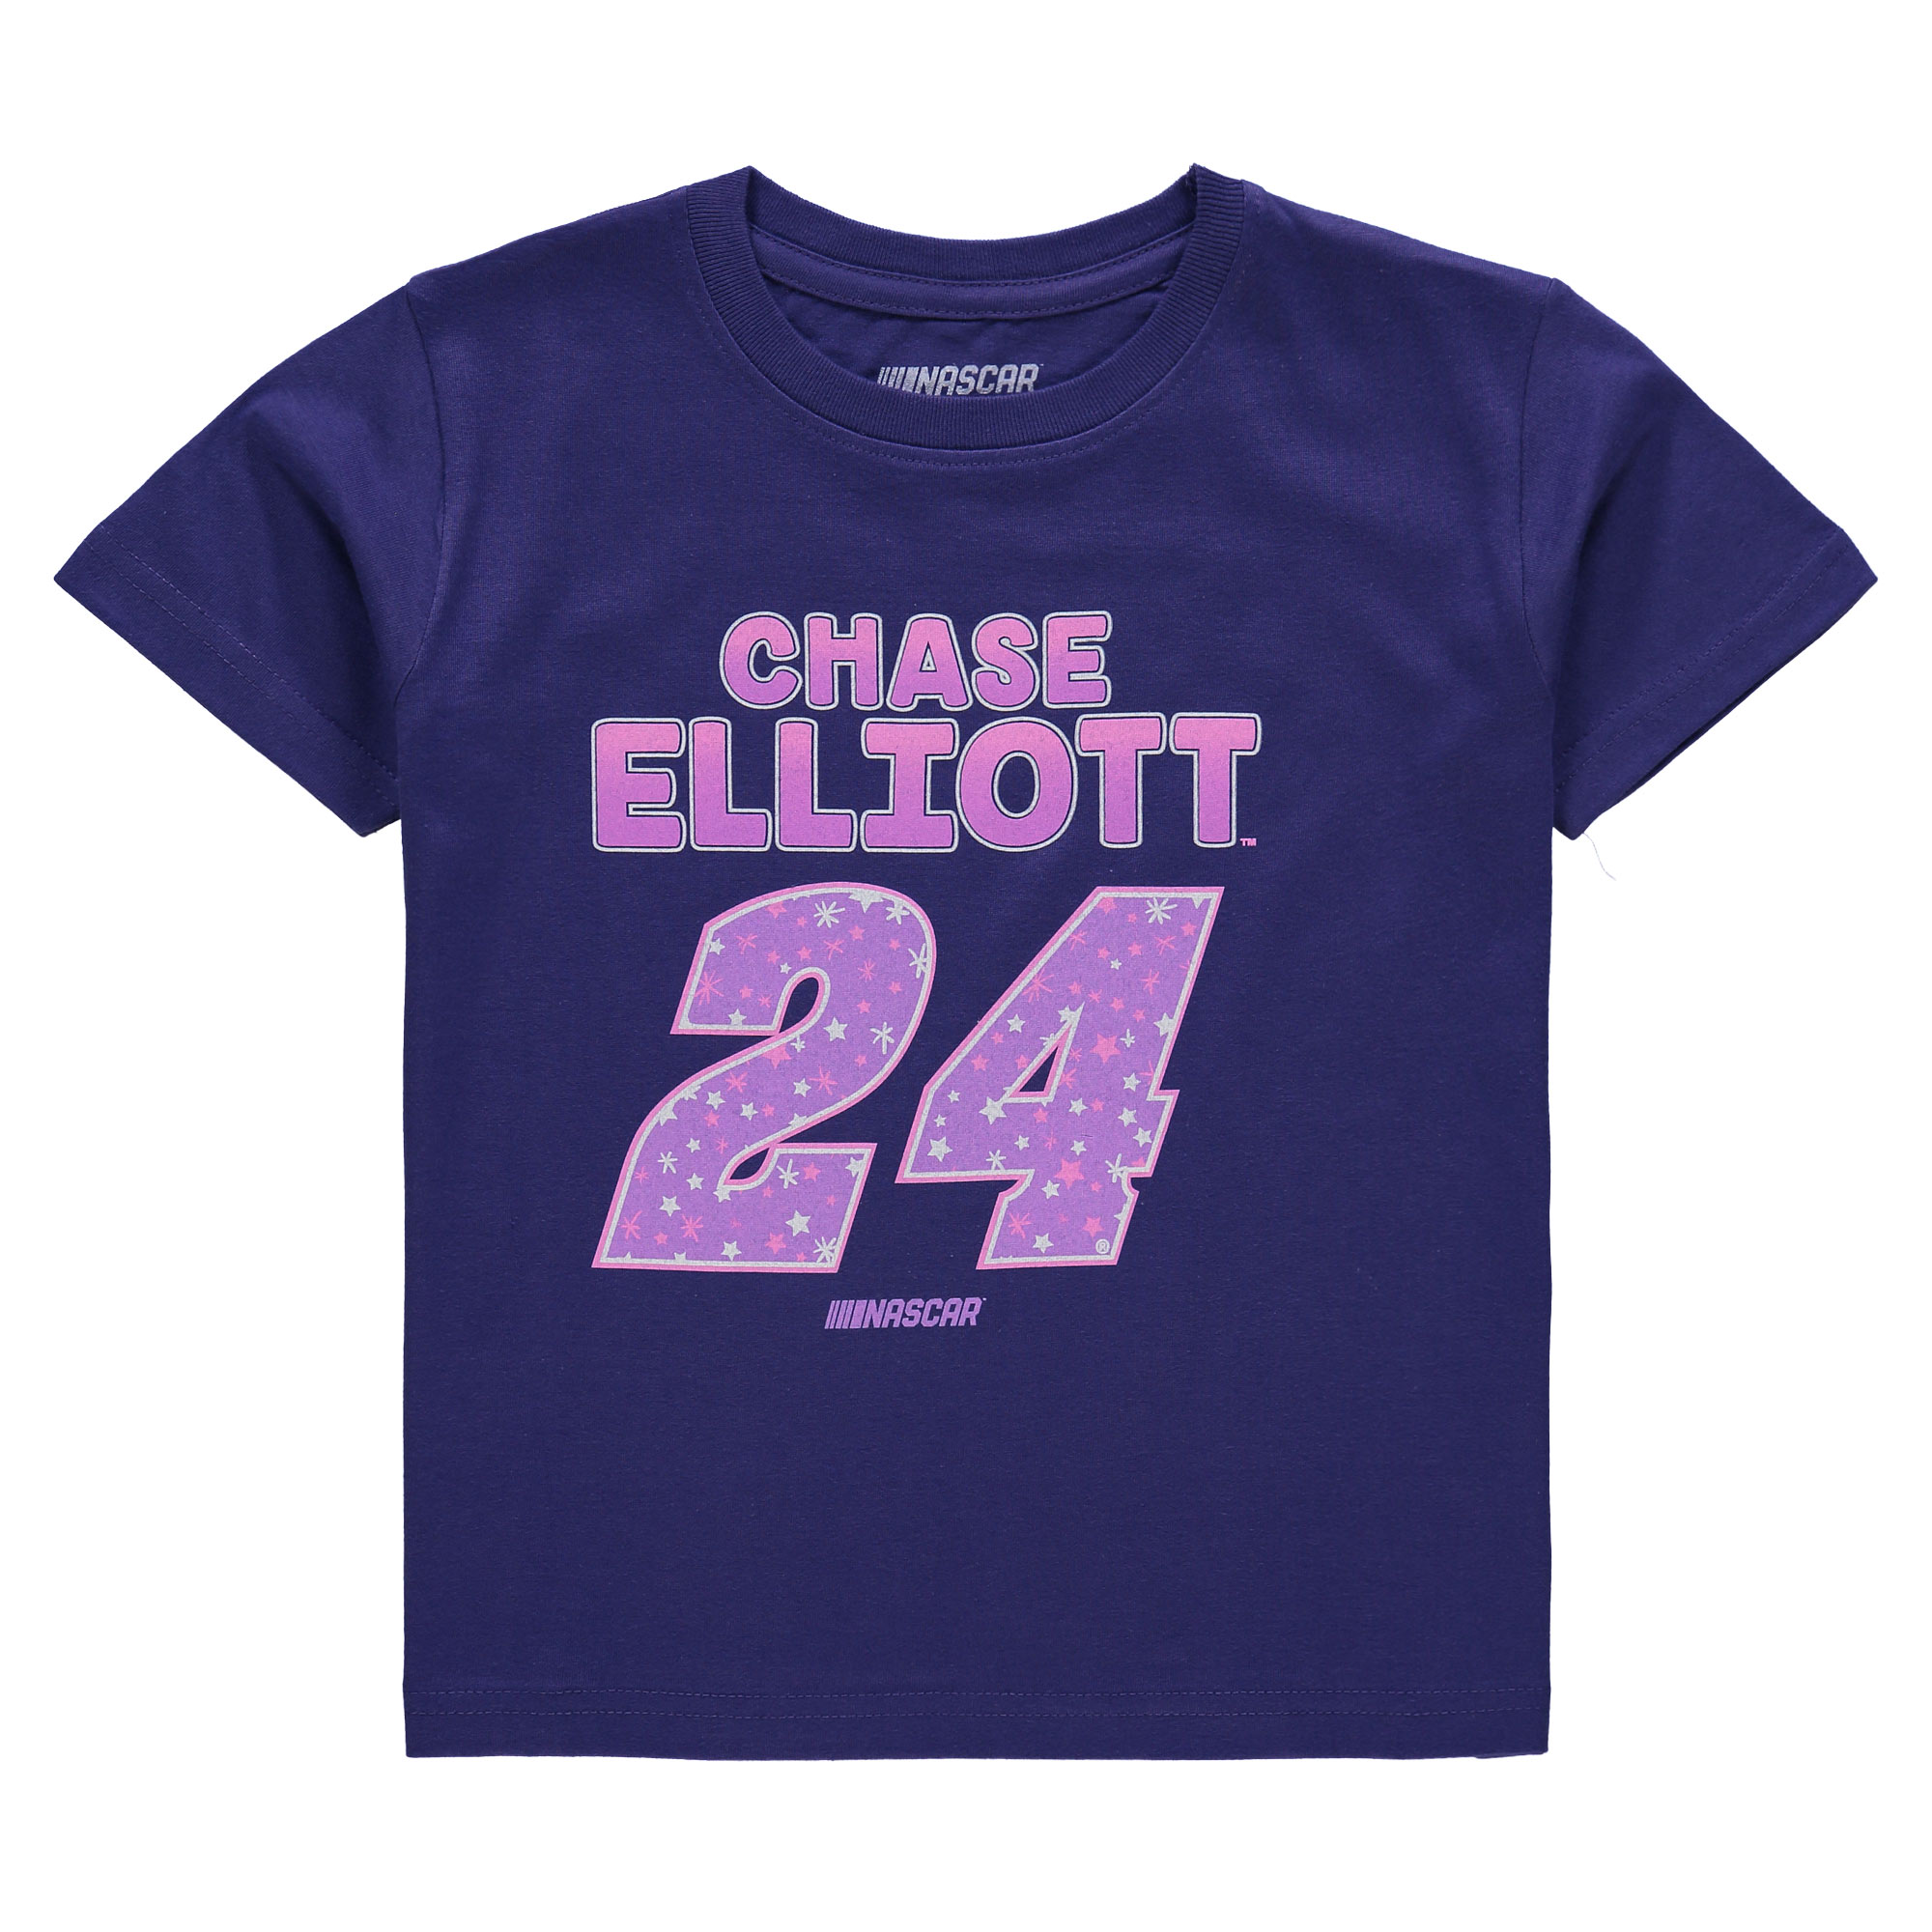 Chase Elliott Fanatics Branded Girls Toddler Driver T-Shirt - Purple